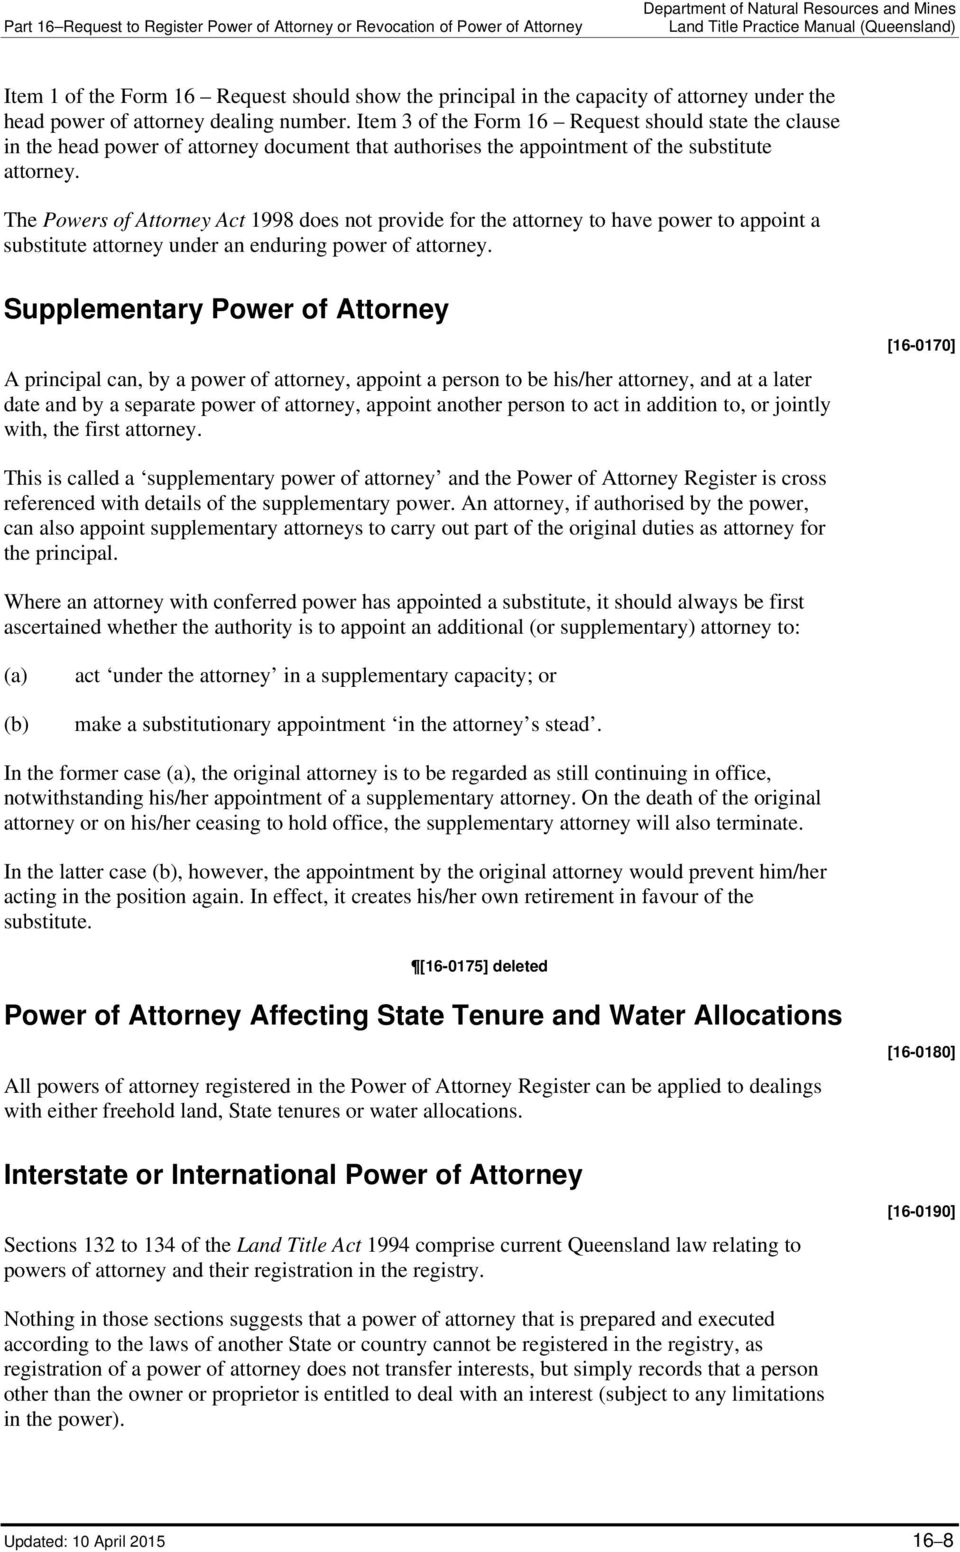 The Powers of Attorney Act 1998 does not provide for the attorney to have power to appoint a substitute attorney under an enduring power of attorney.